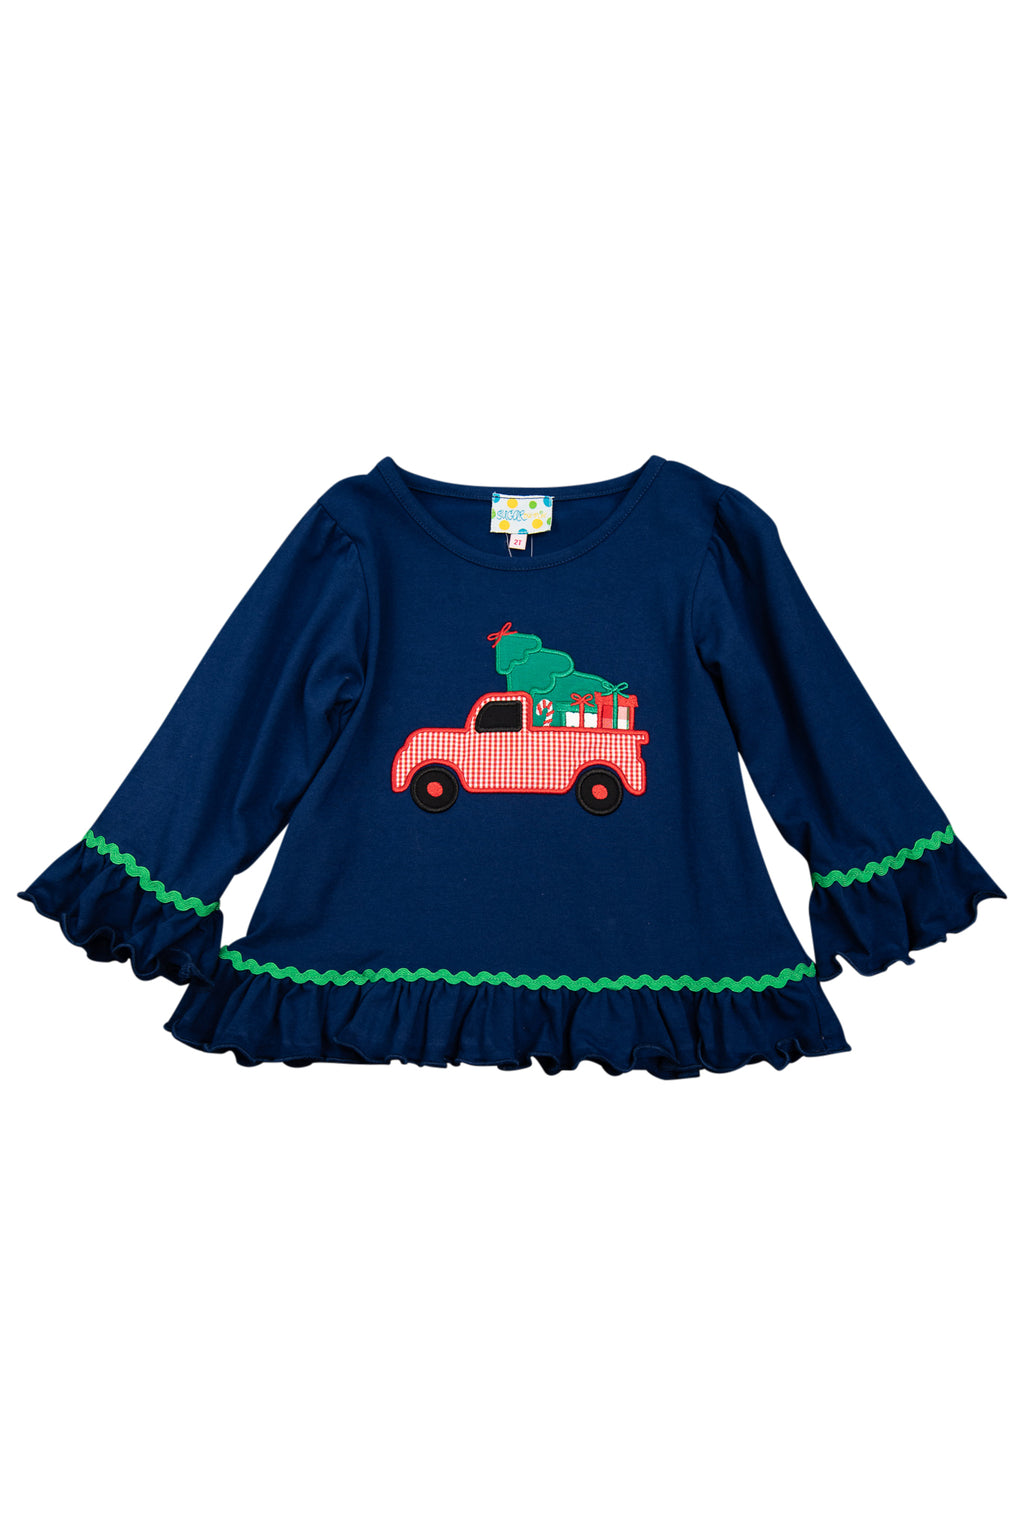 Girls Knit Christmas Tree/Truck Shirt Only